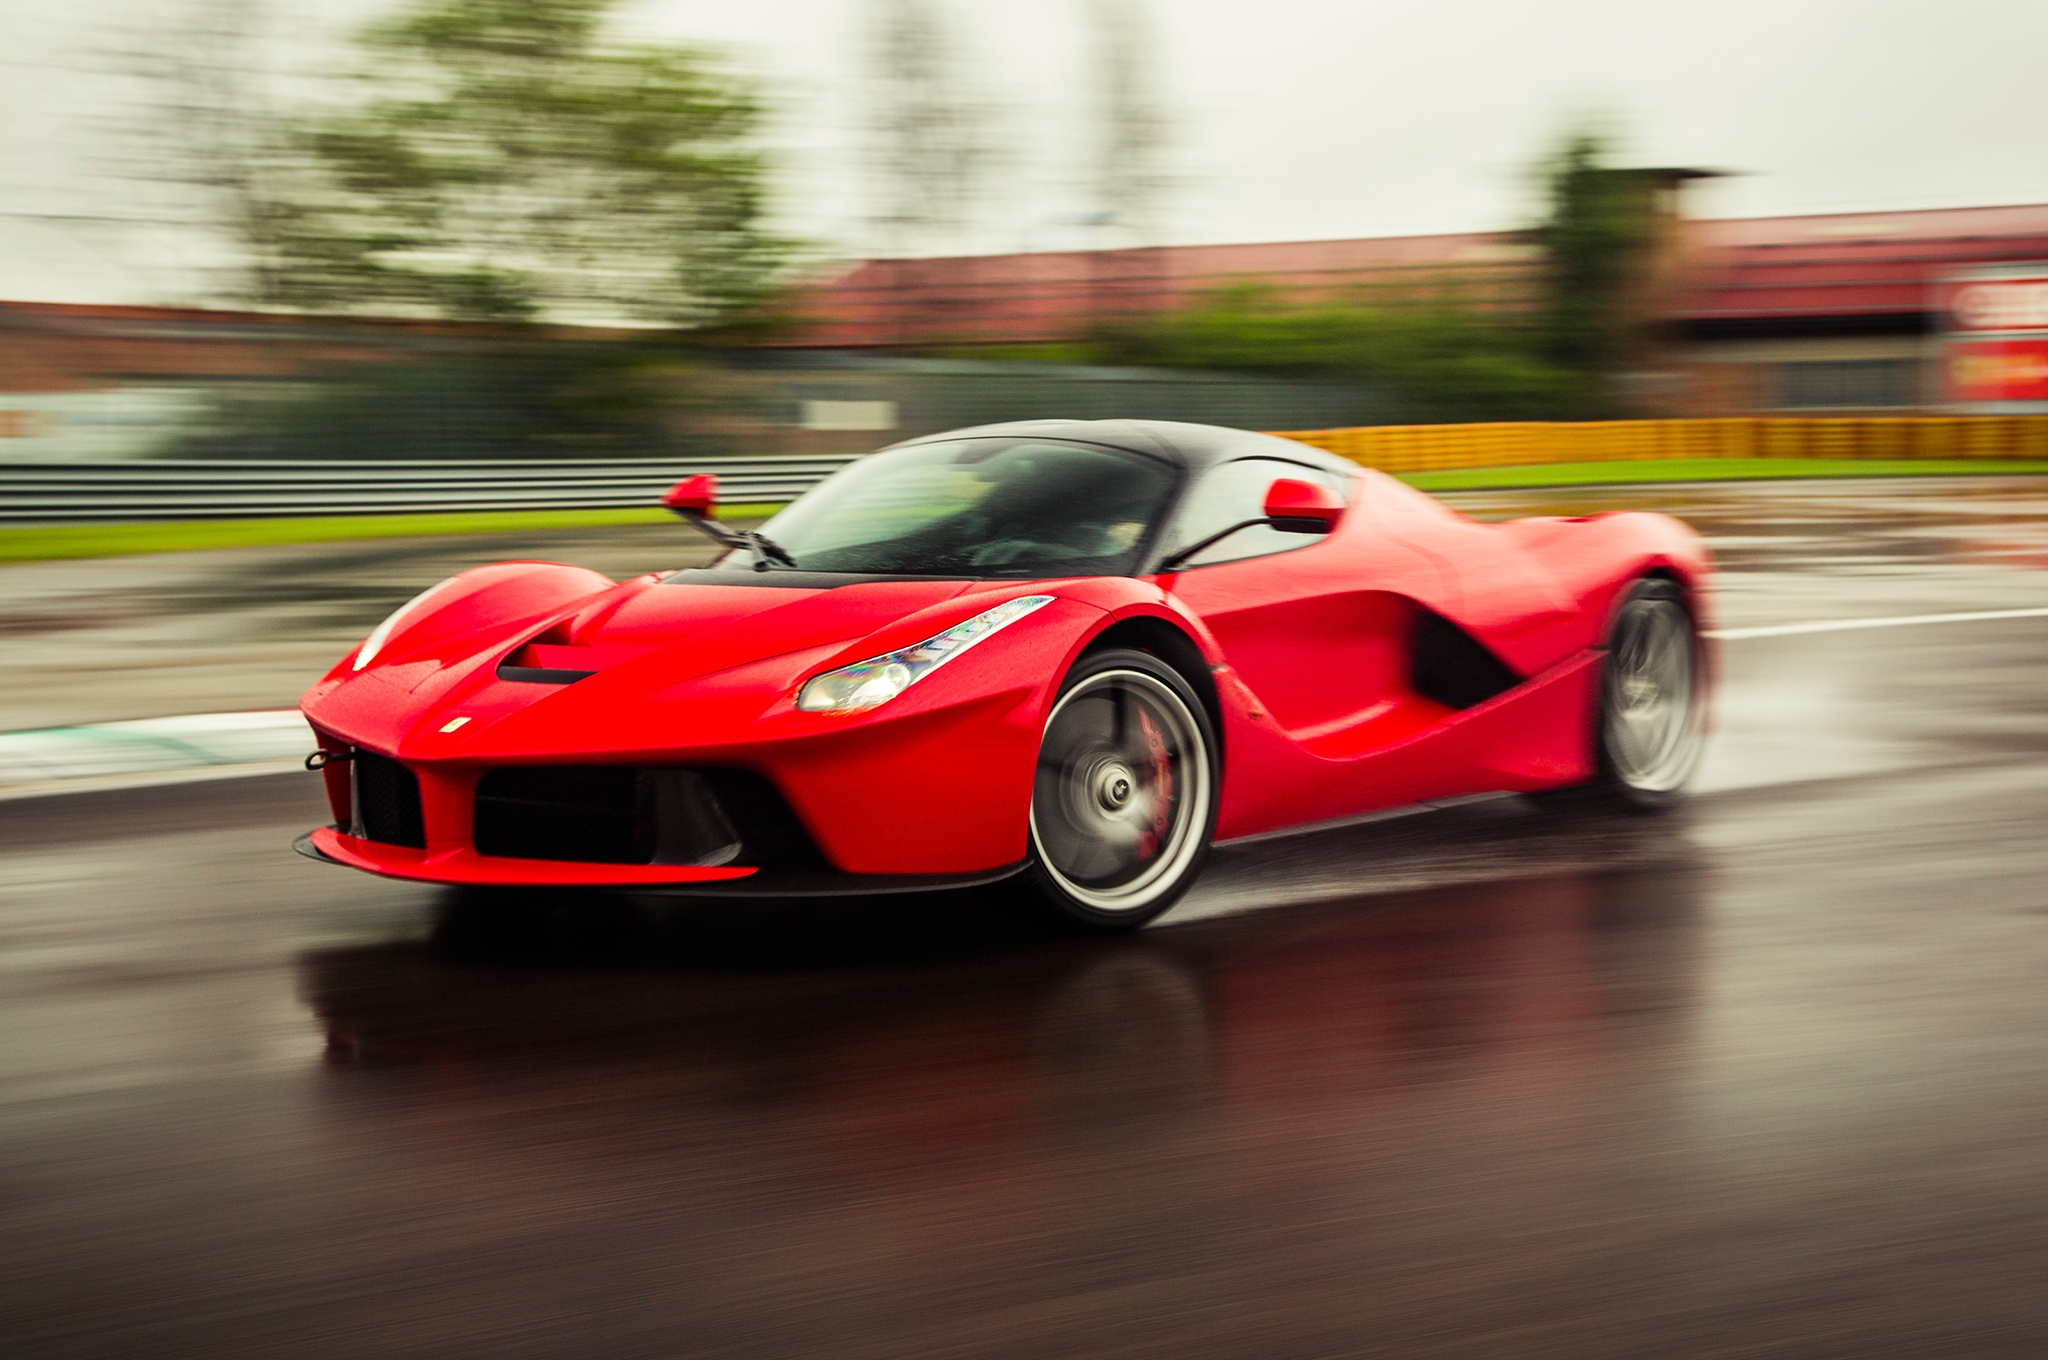 Ferrari Laferrari Specs And Price Exotic Car List